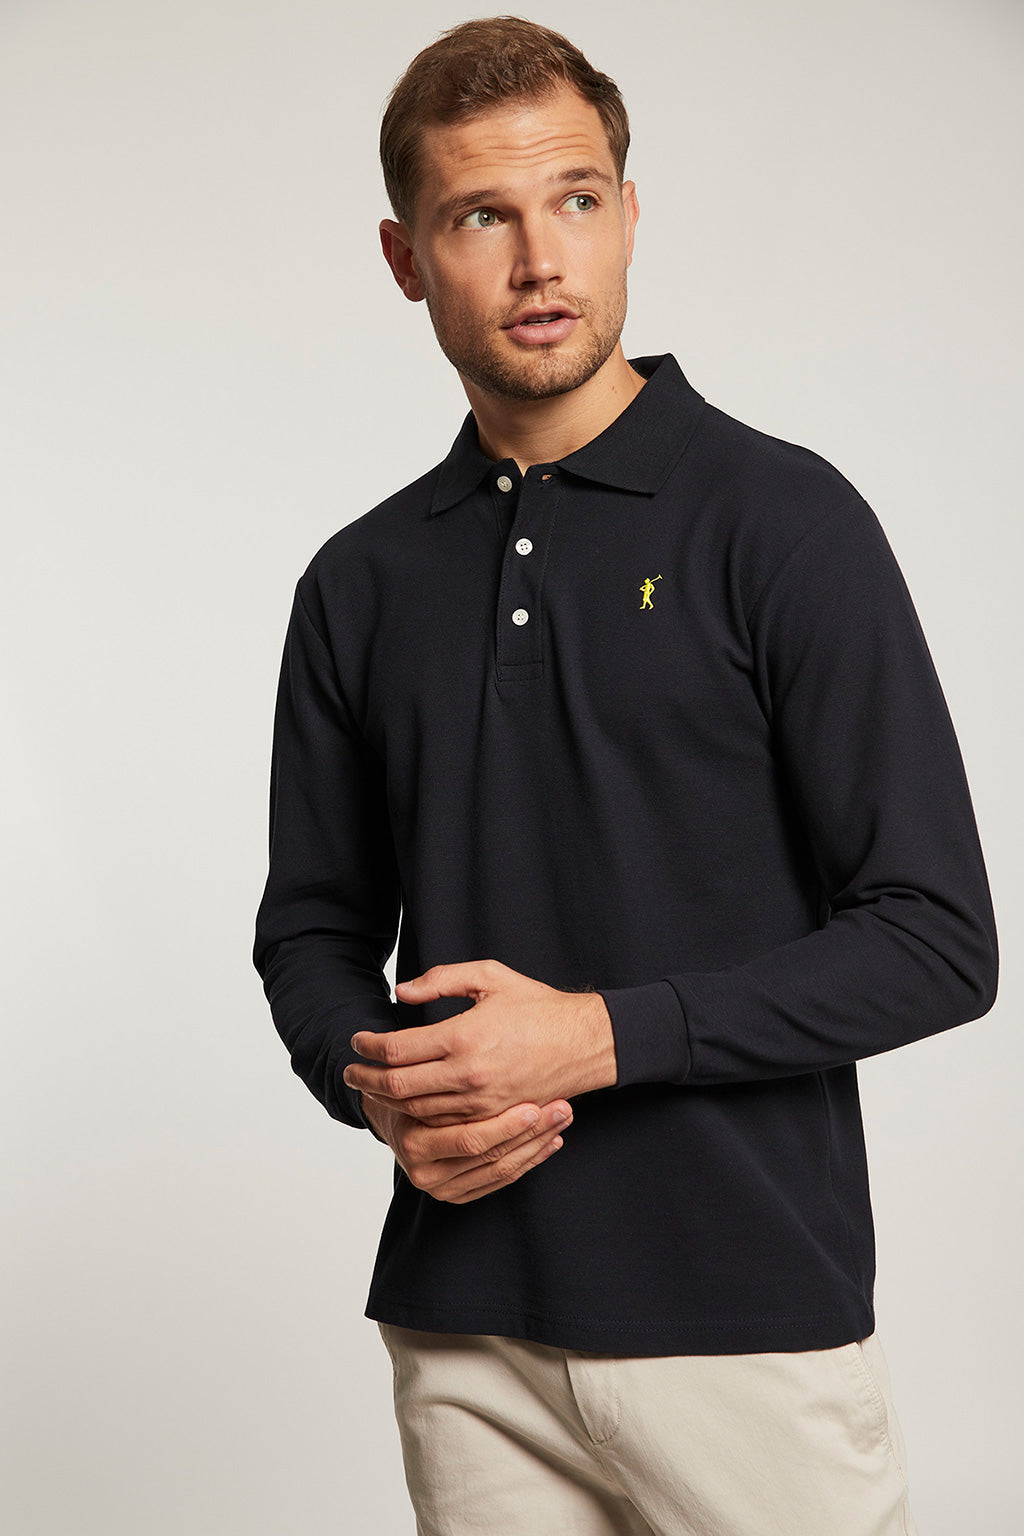 Navy blue long sleeve polo shirt with contrast embroidered logo